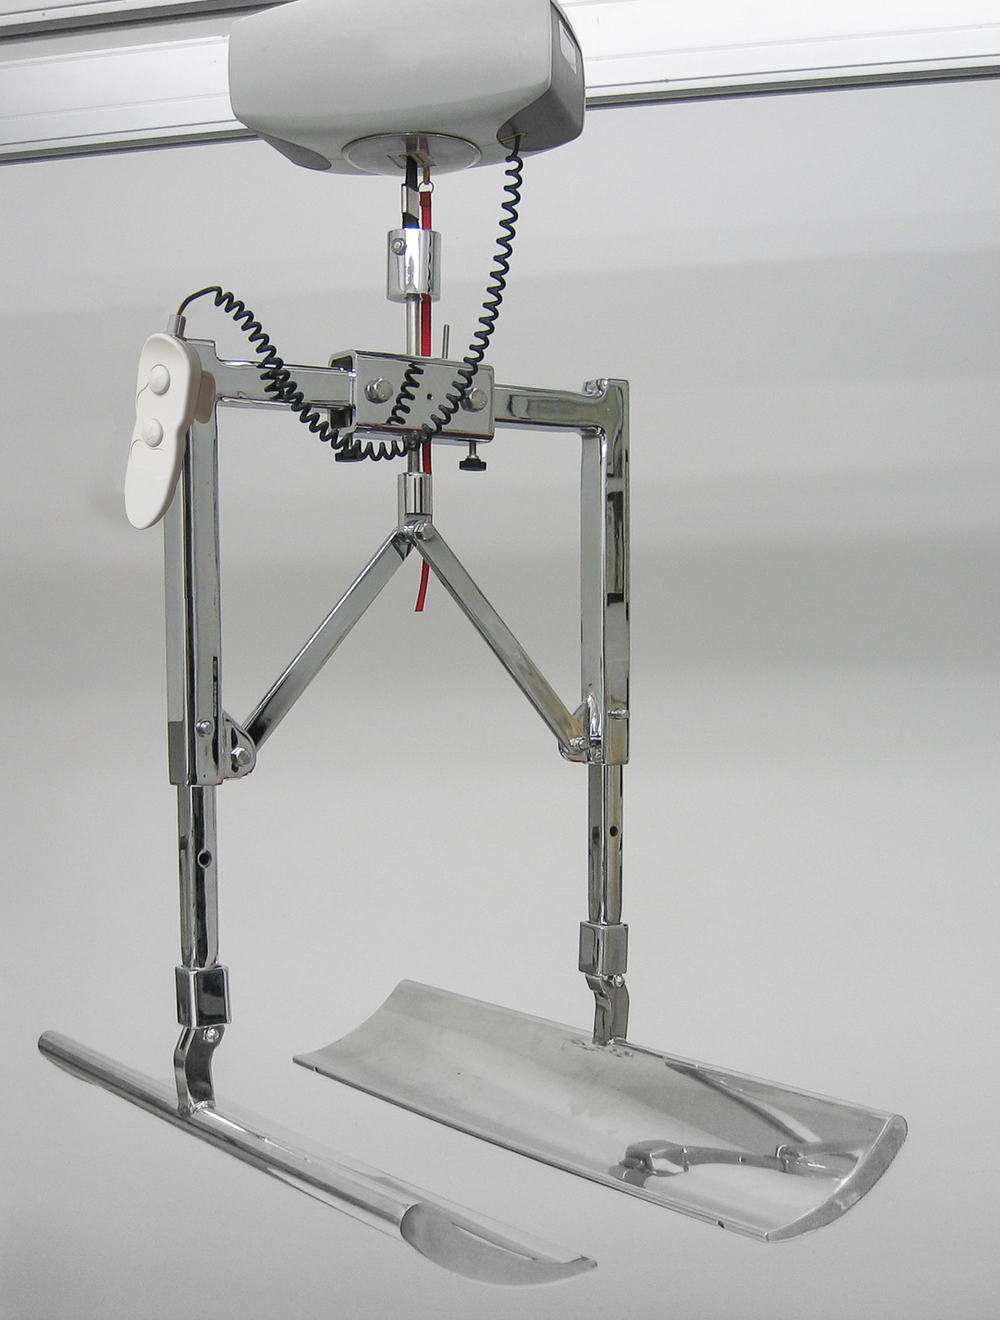 COMPLETE UNIT of the patented BodyScoop  shown hanging in place from rail system